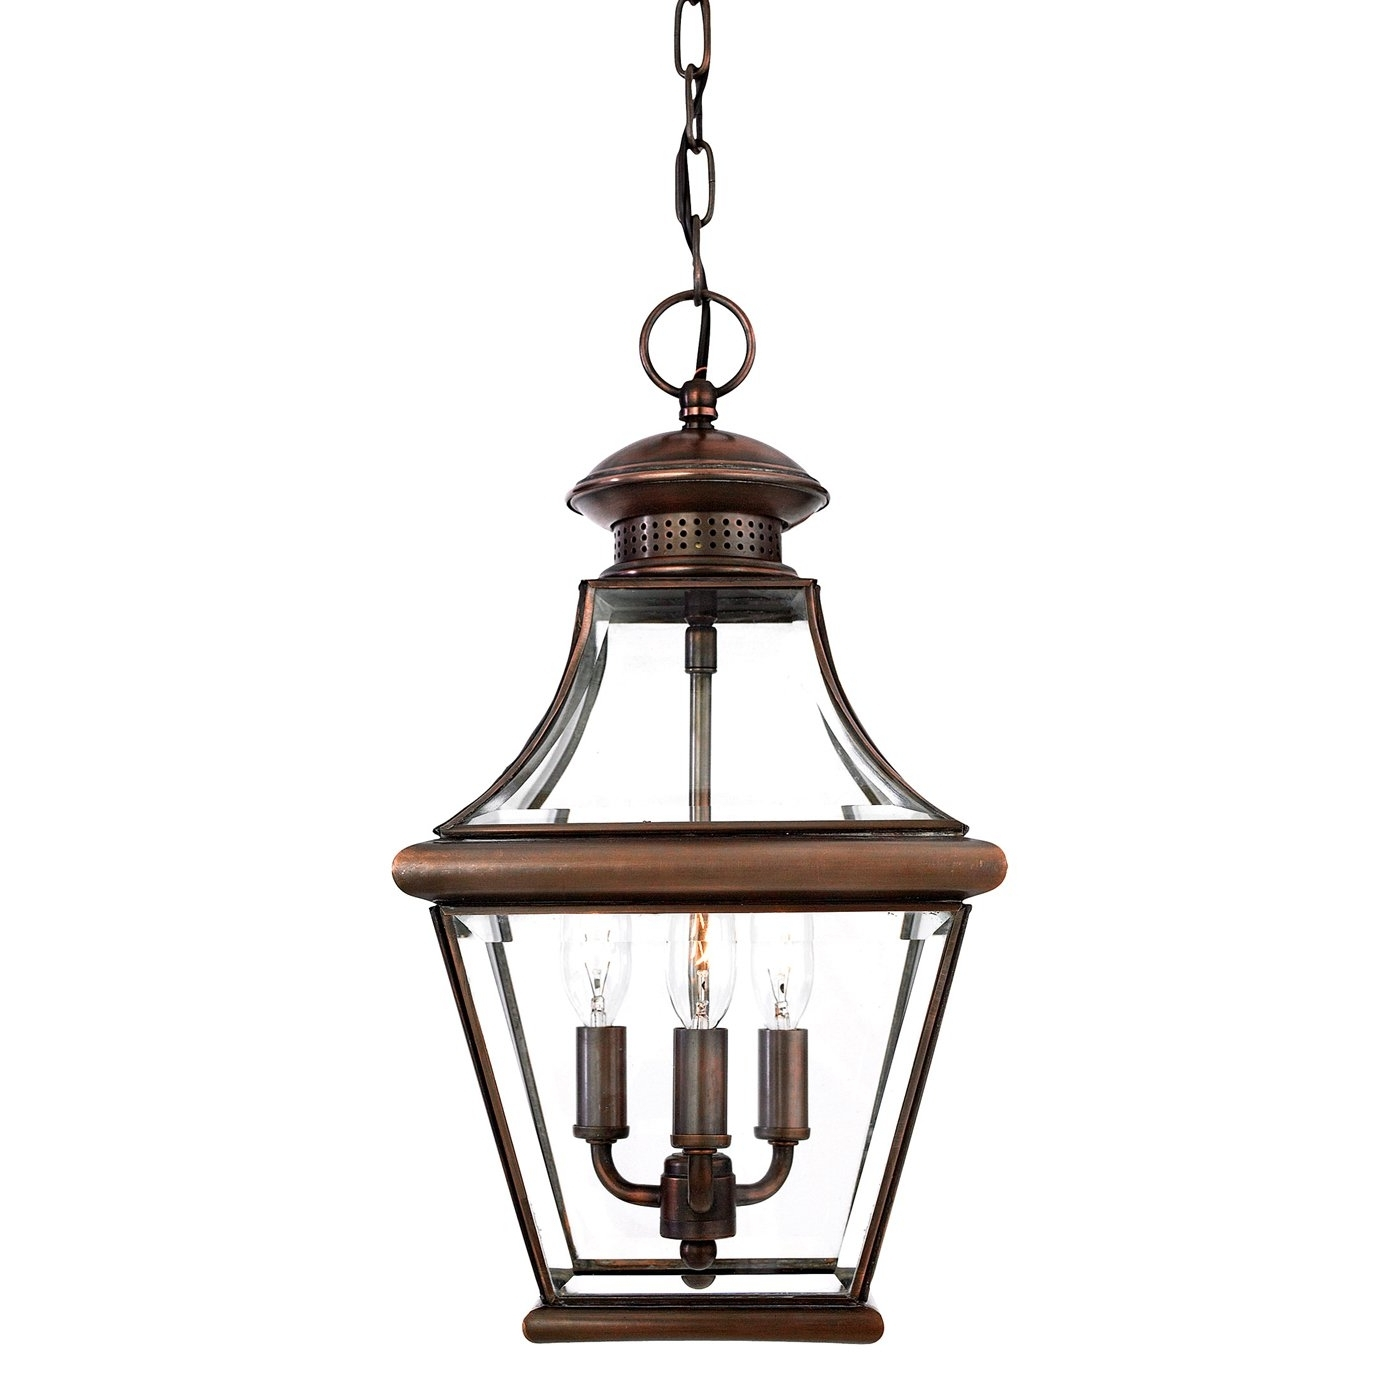 Designer Outdoor Pendant Light Fixtures Home Depot: 15 Outstanding Intended For Fashionable Outdoor Hanging Lights At Home Depot (Gallery 19 of 20)